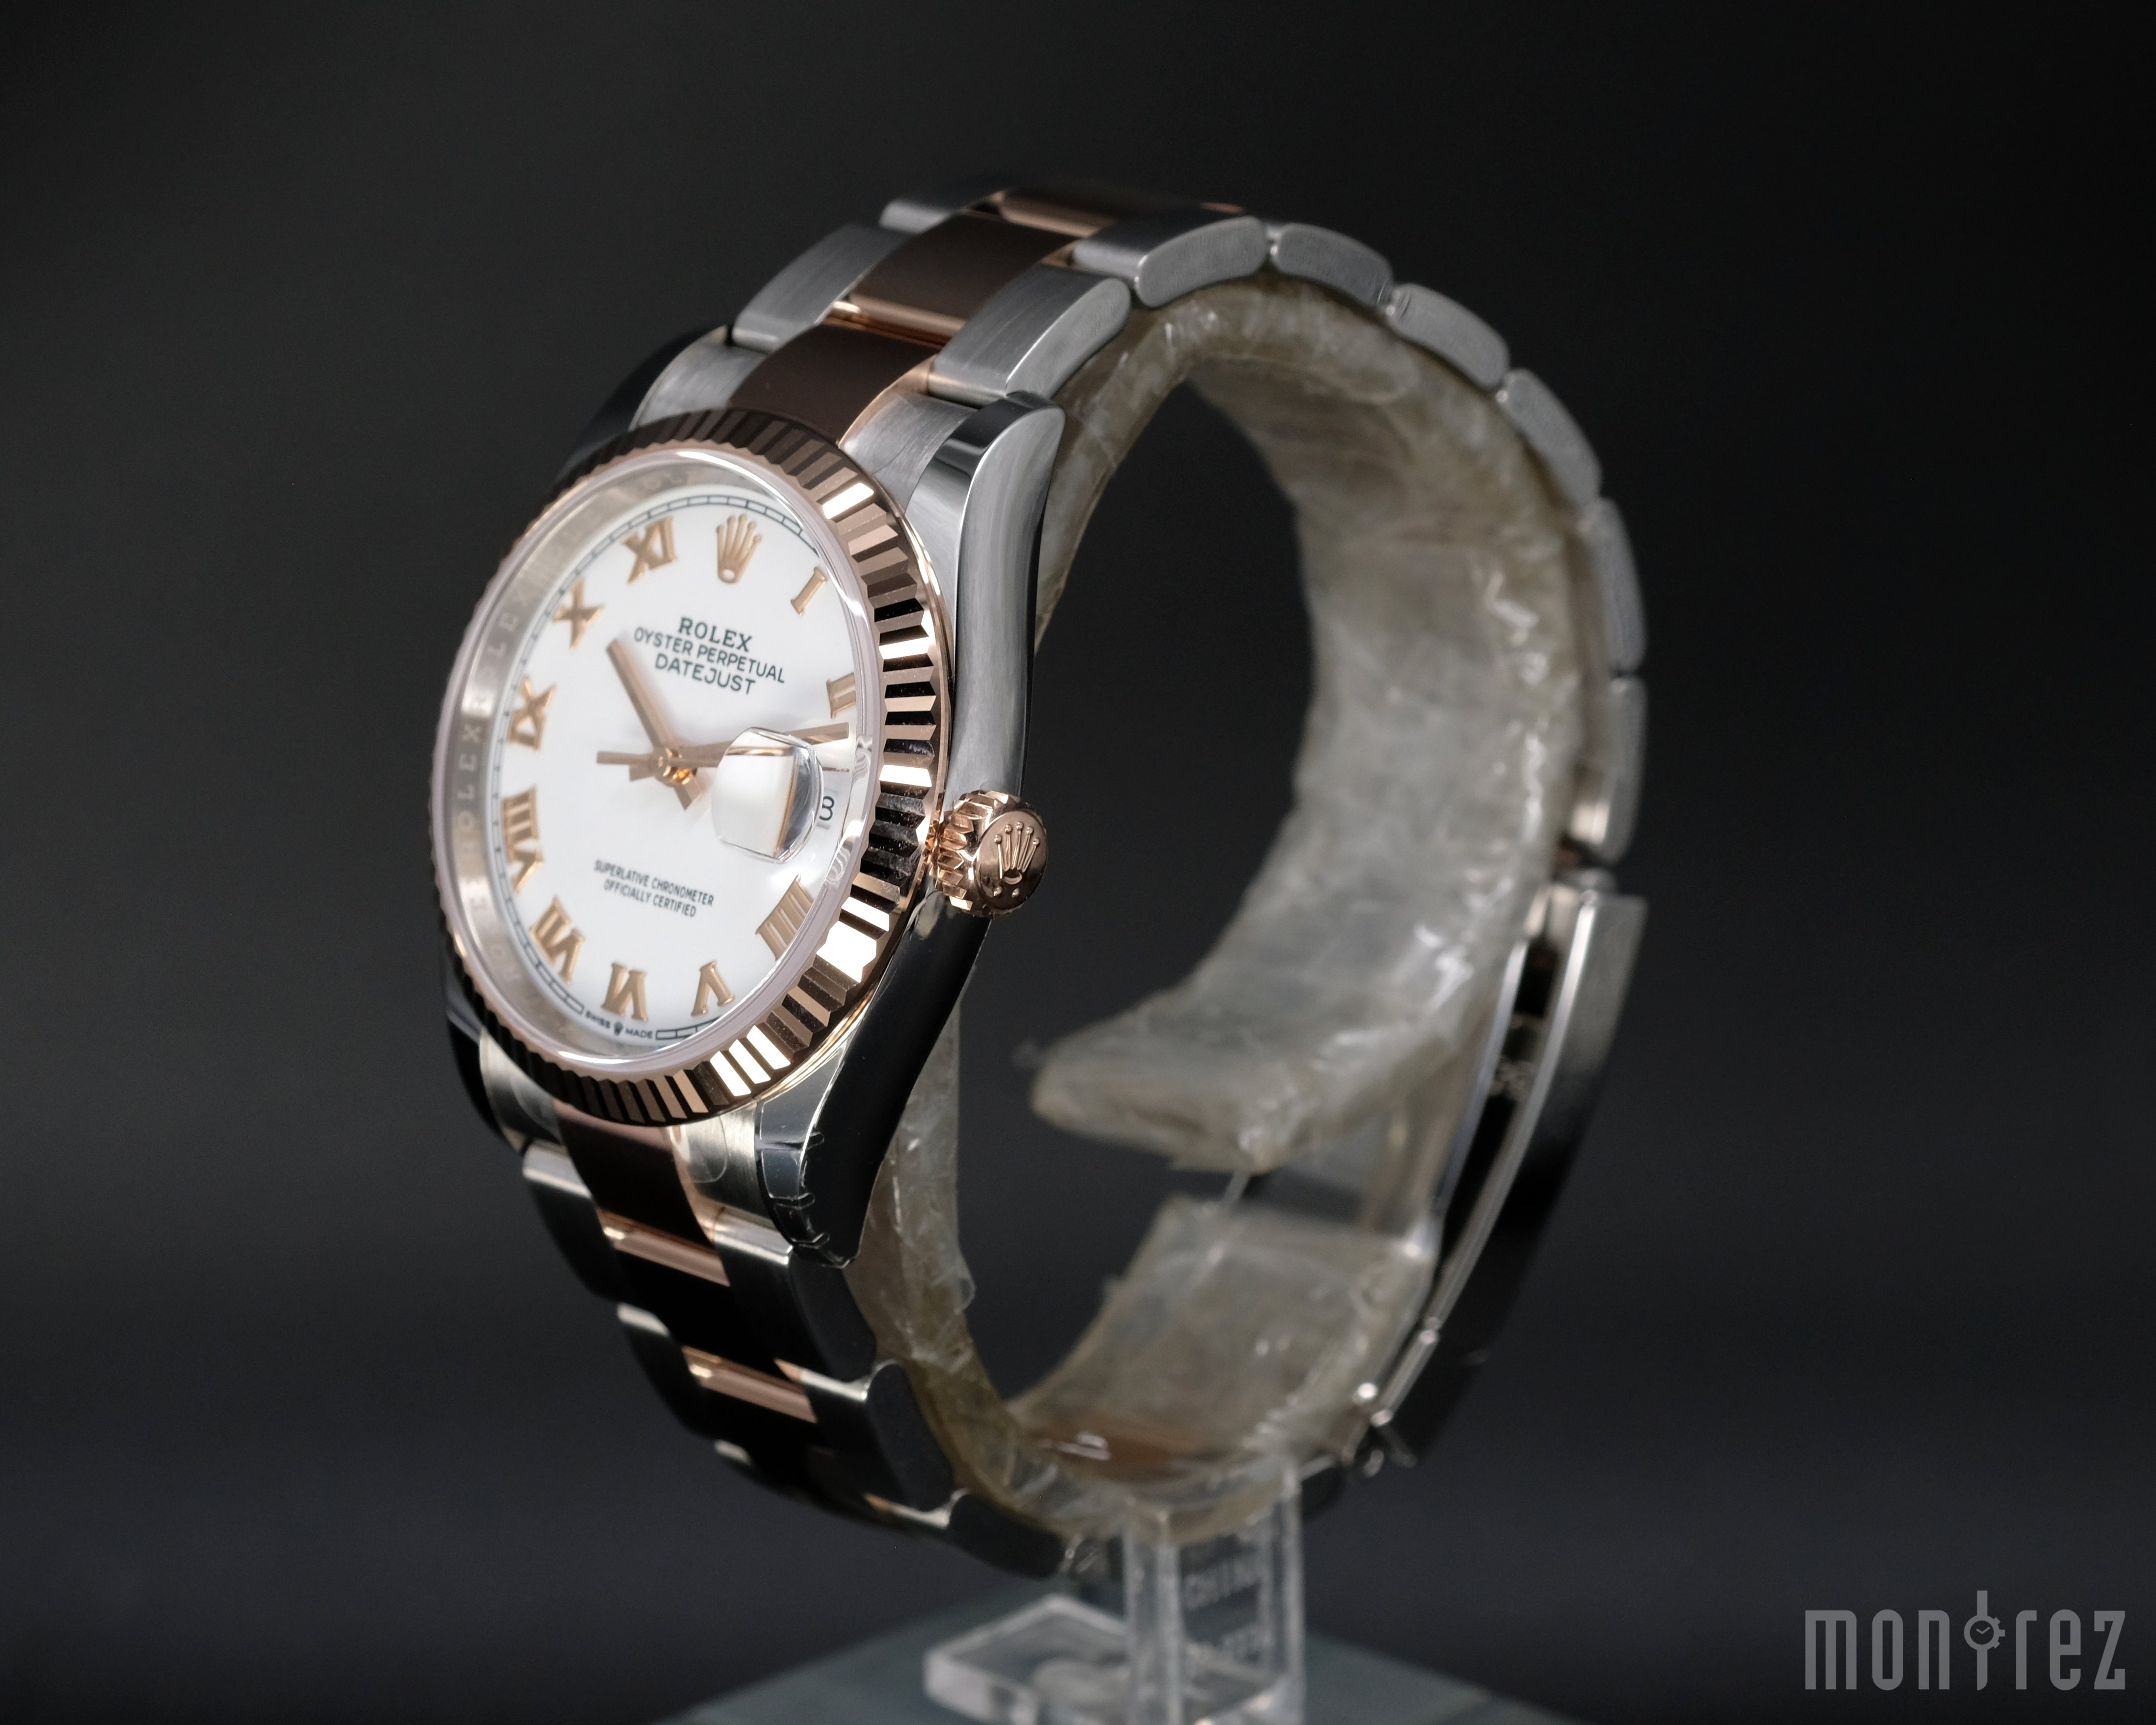 [Brand New Watch] Rolex Datejust 36mm 126231 White Roman Dial (Oyster Bracelet)